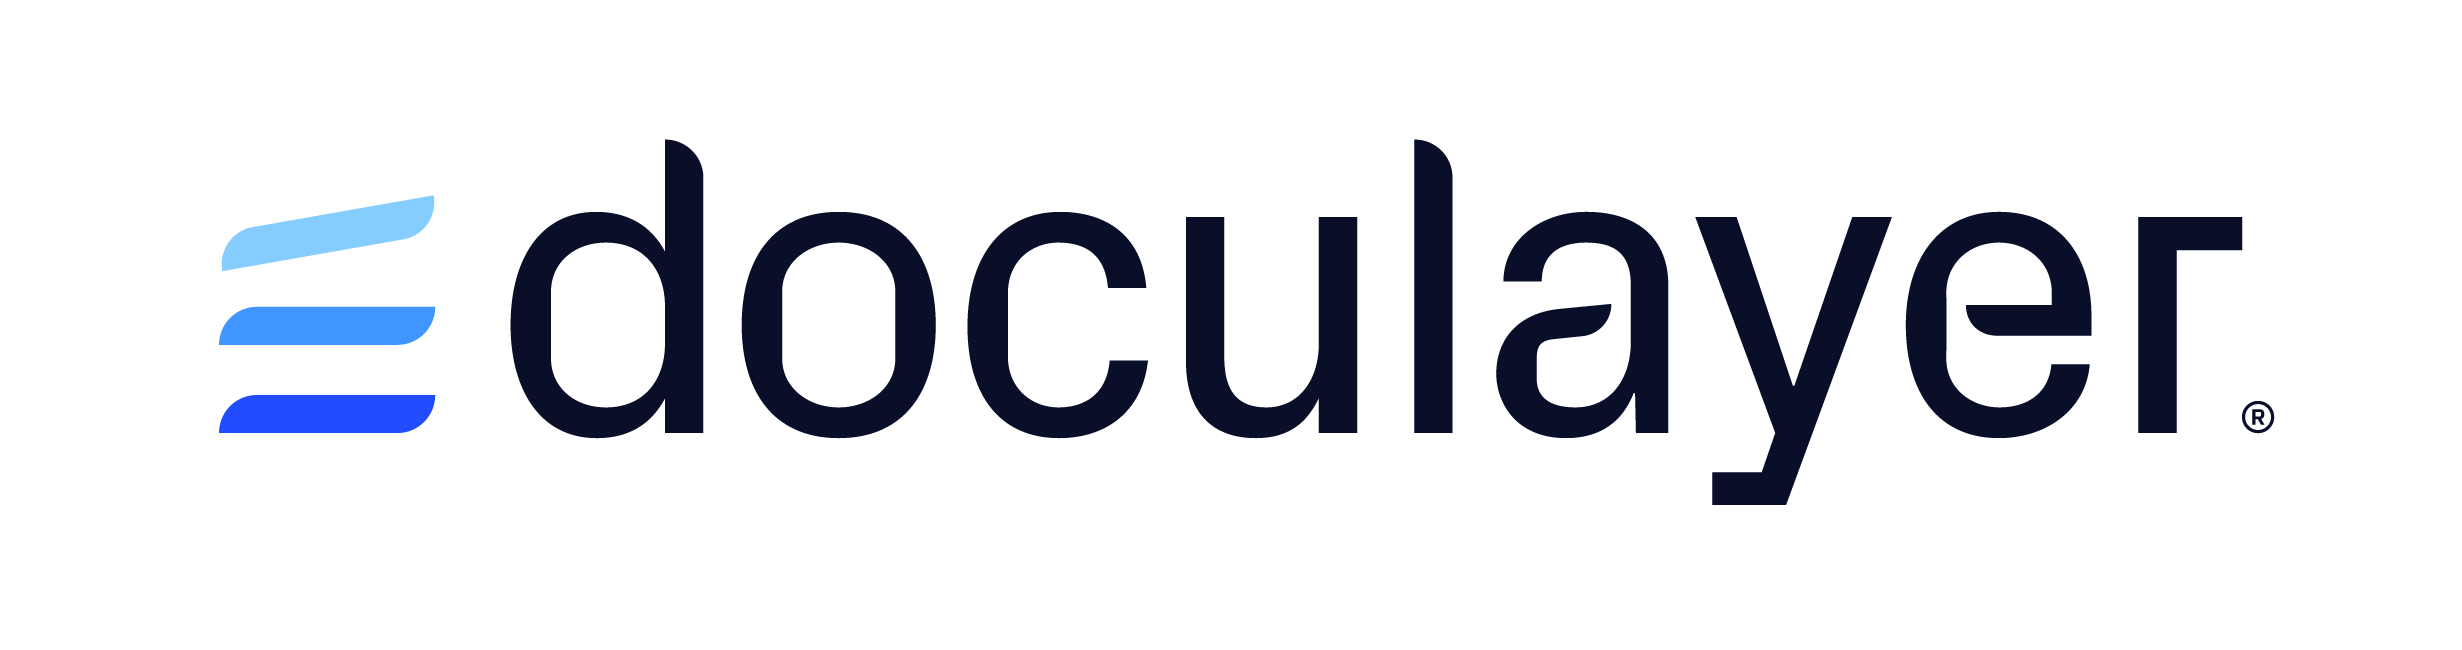 Doculayer logo